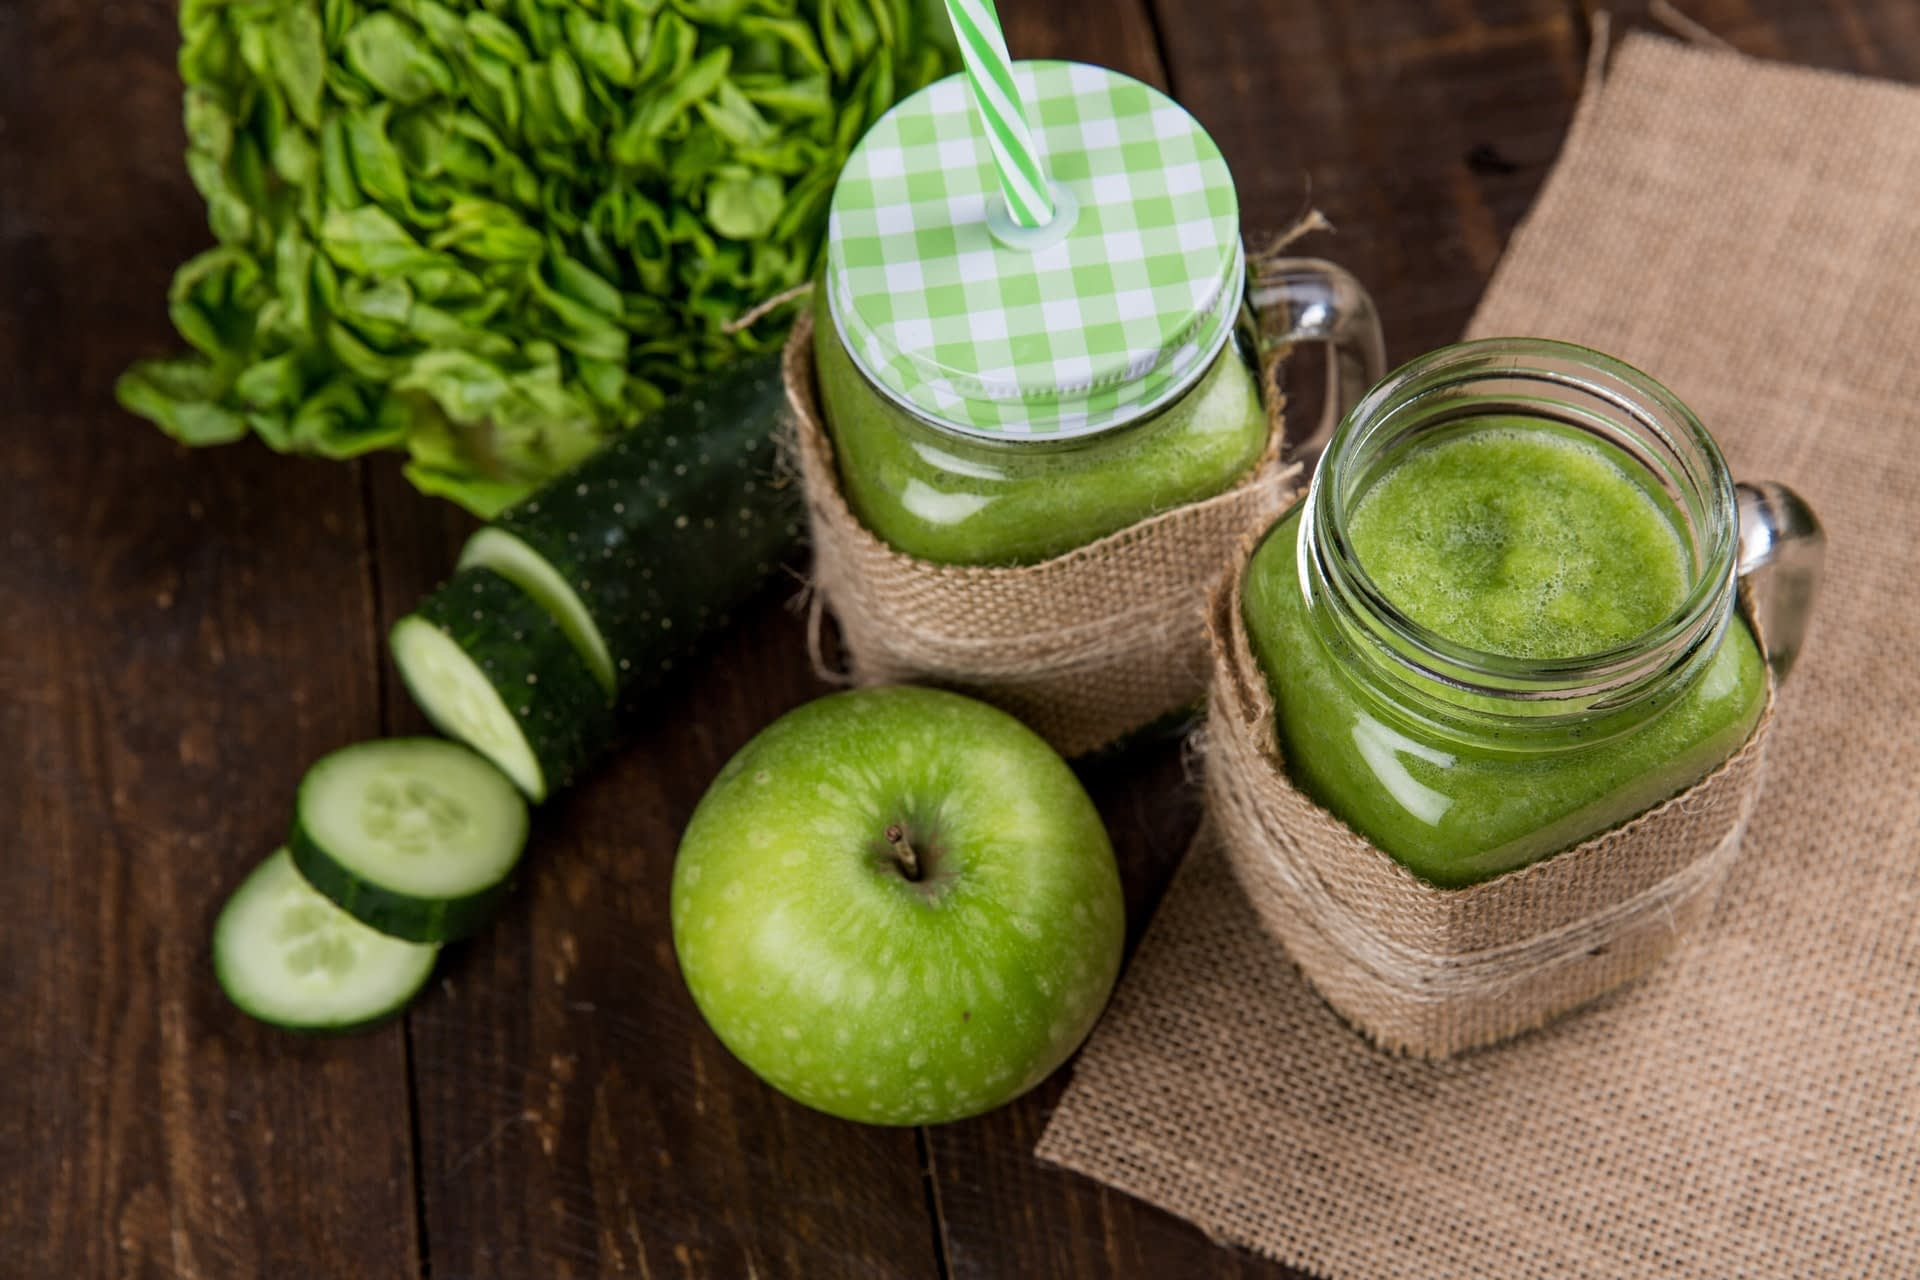 Check out the best masticating juicers below.